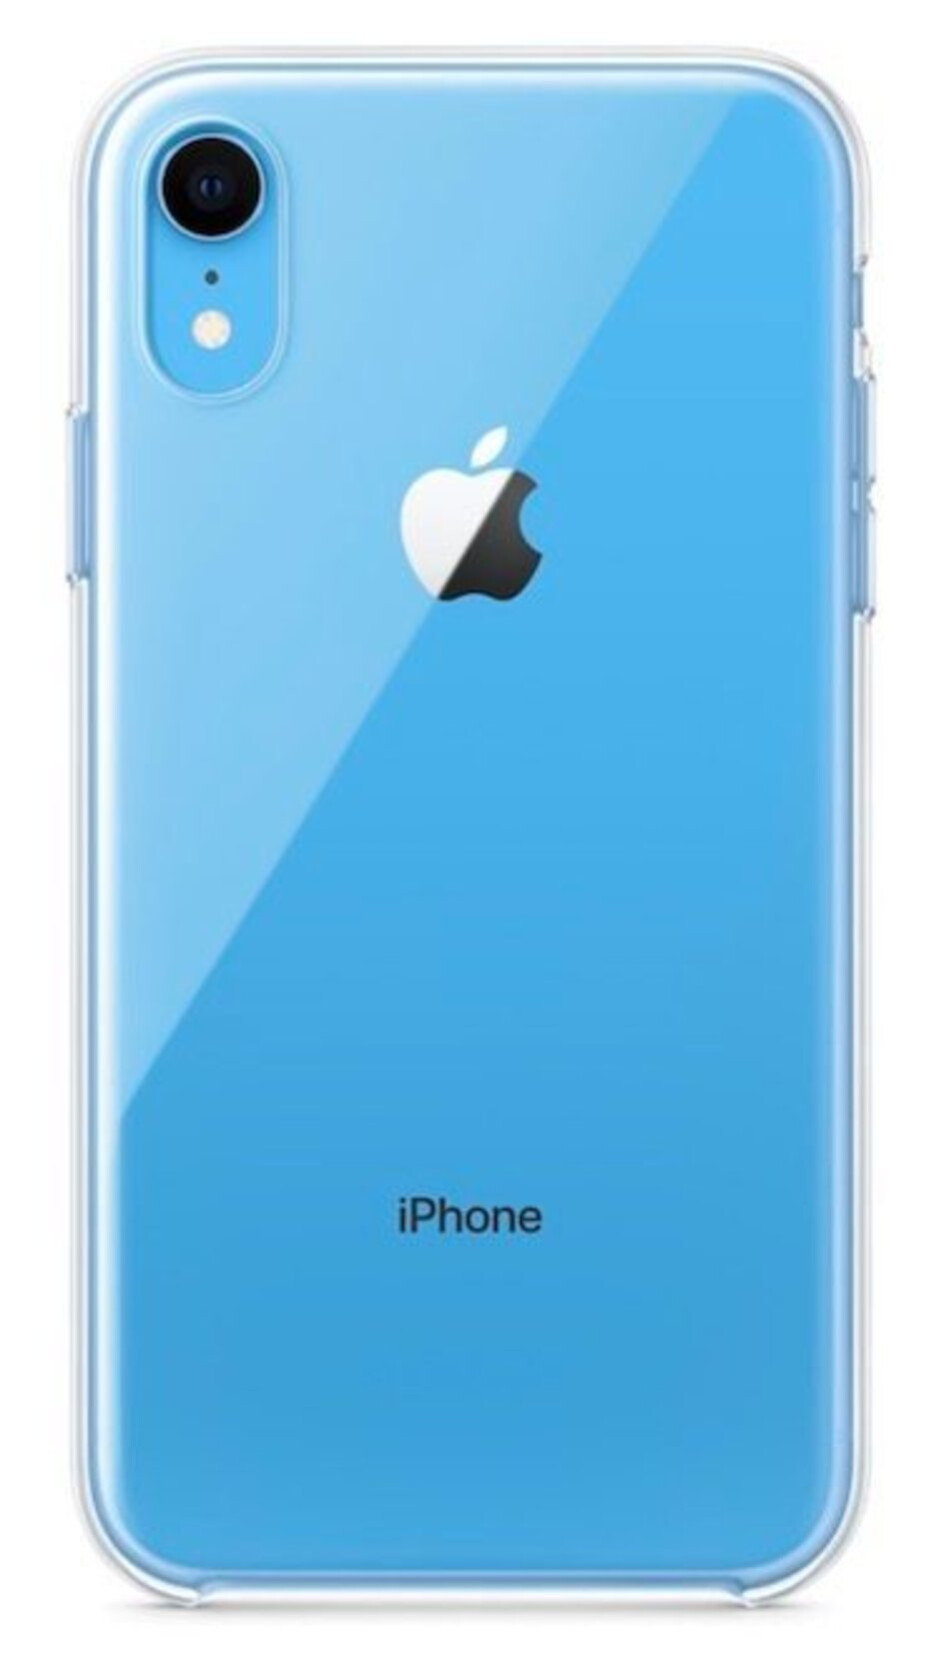 Apple's official iPhone XR clear case - Here's a first look at Apple's first ever clear case, for the colorful iPhone XR